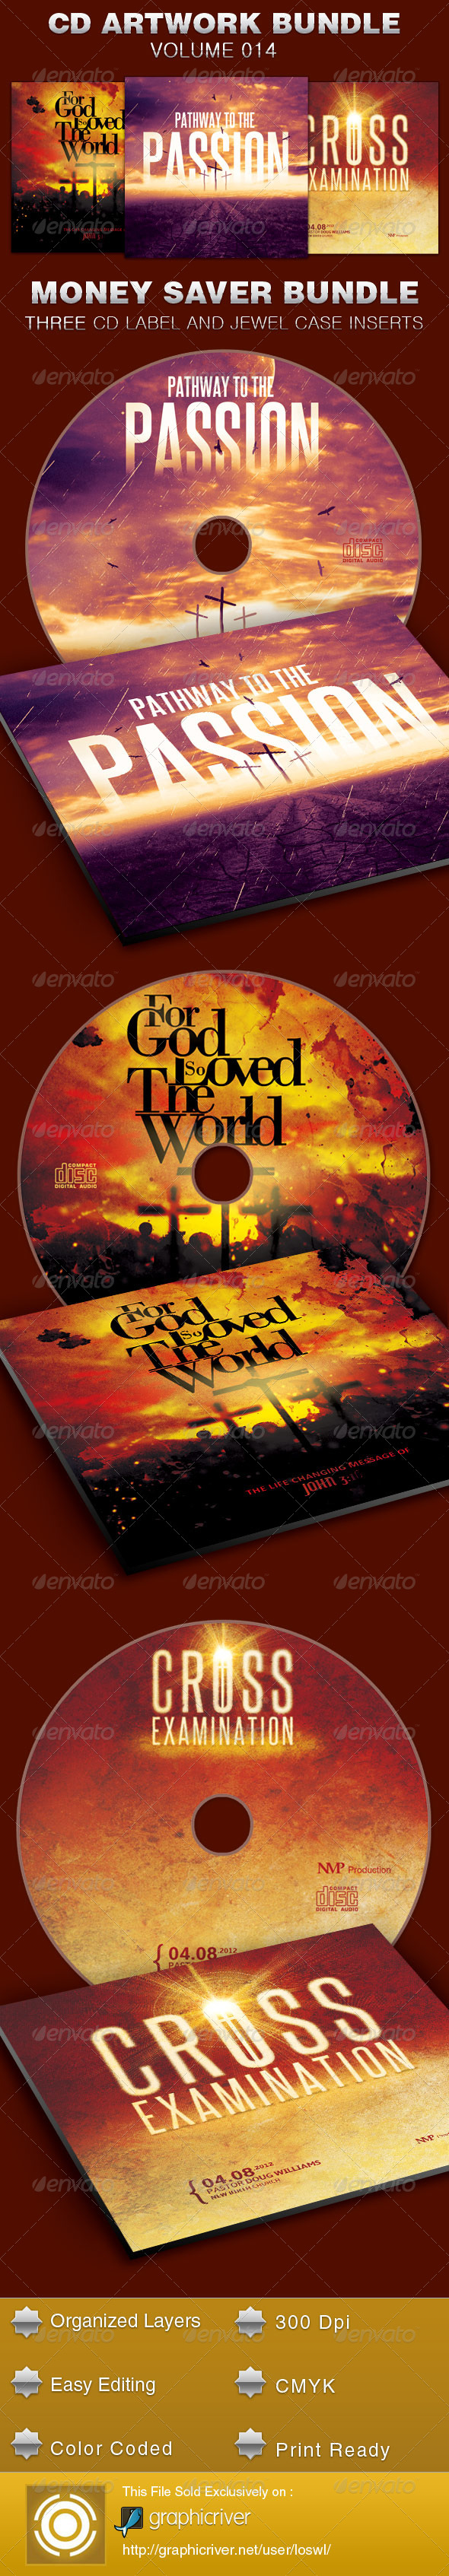 CD Cover Artwork Template Bundle-Vol 014 - CD & DVD artwork Print Templates